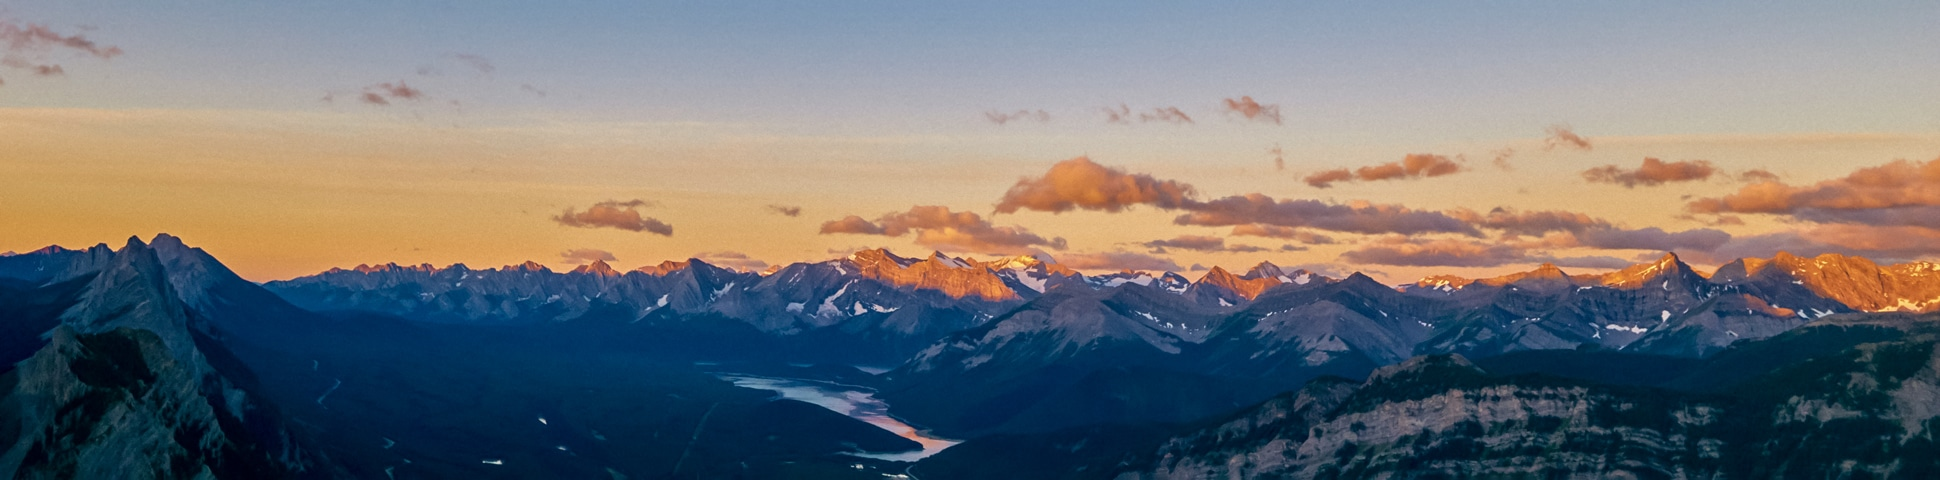 Family-Friendly Backpacking Trails in the Canadian Rockies